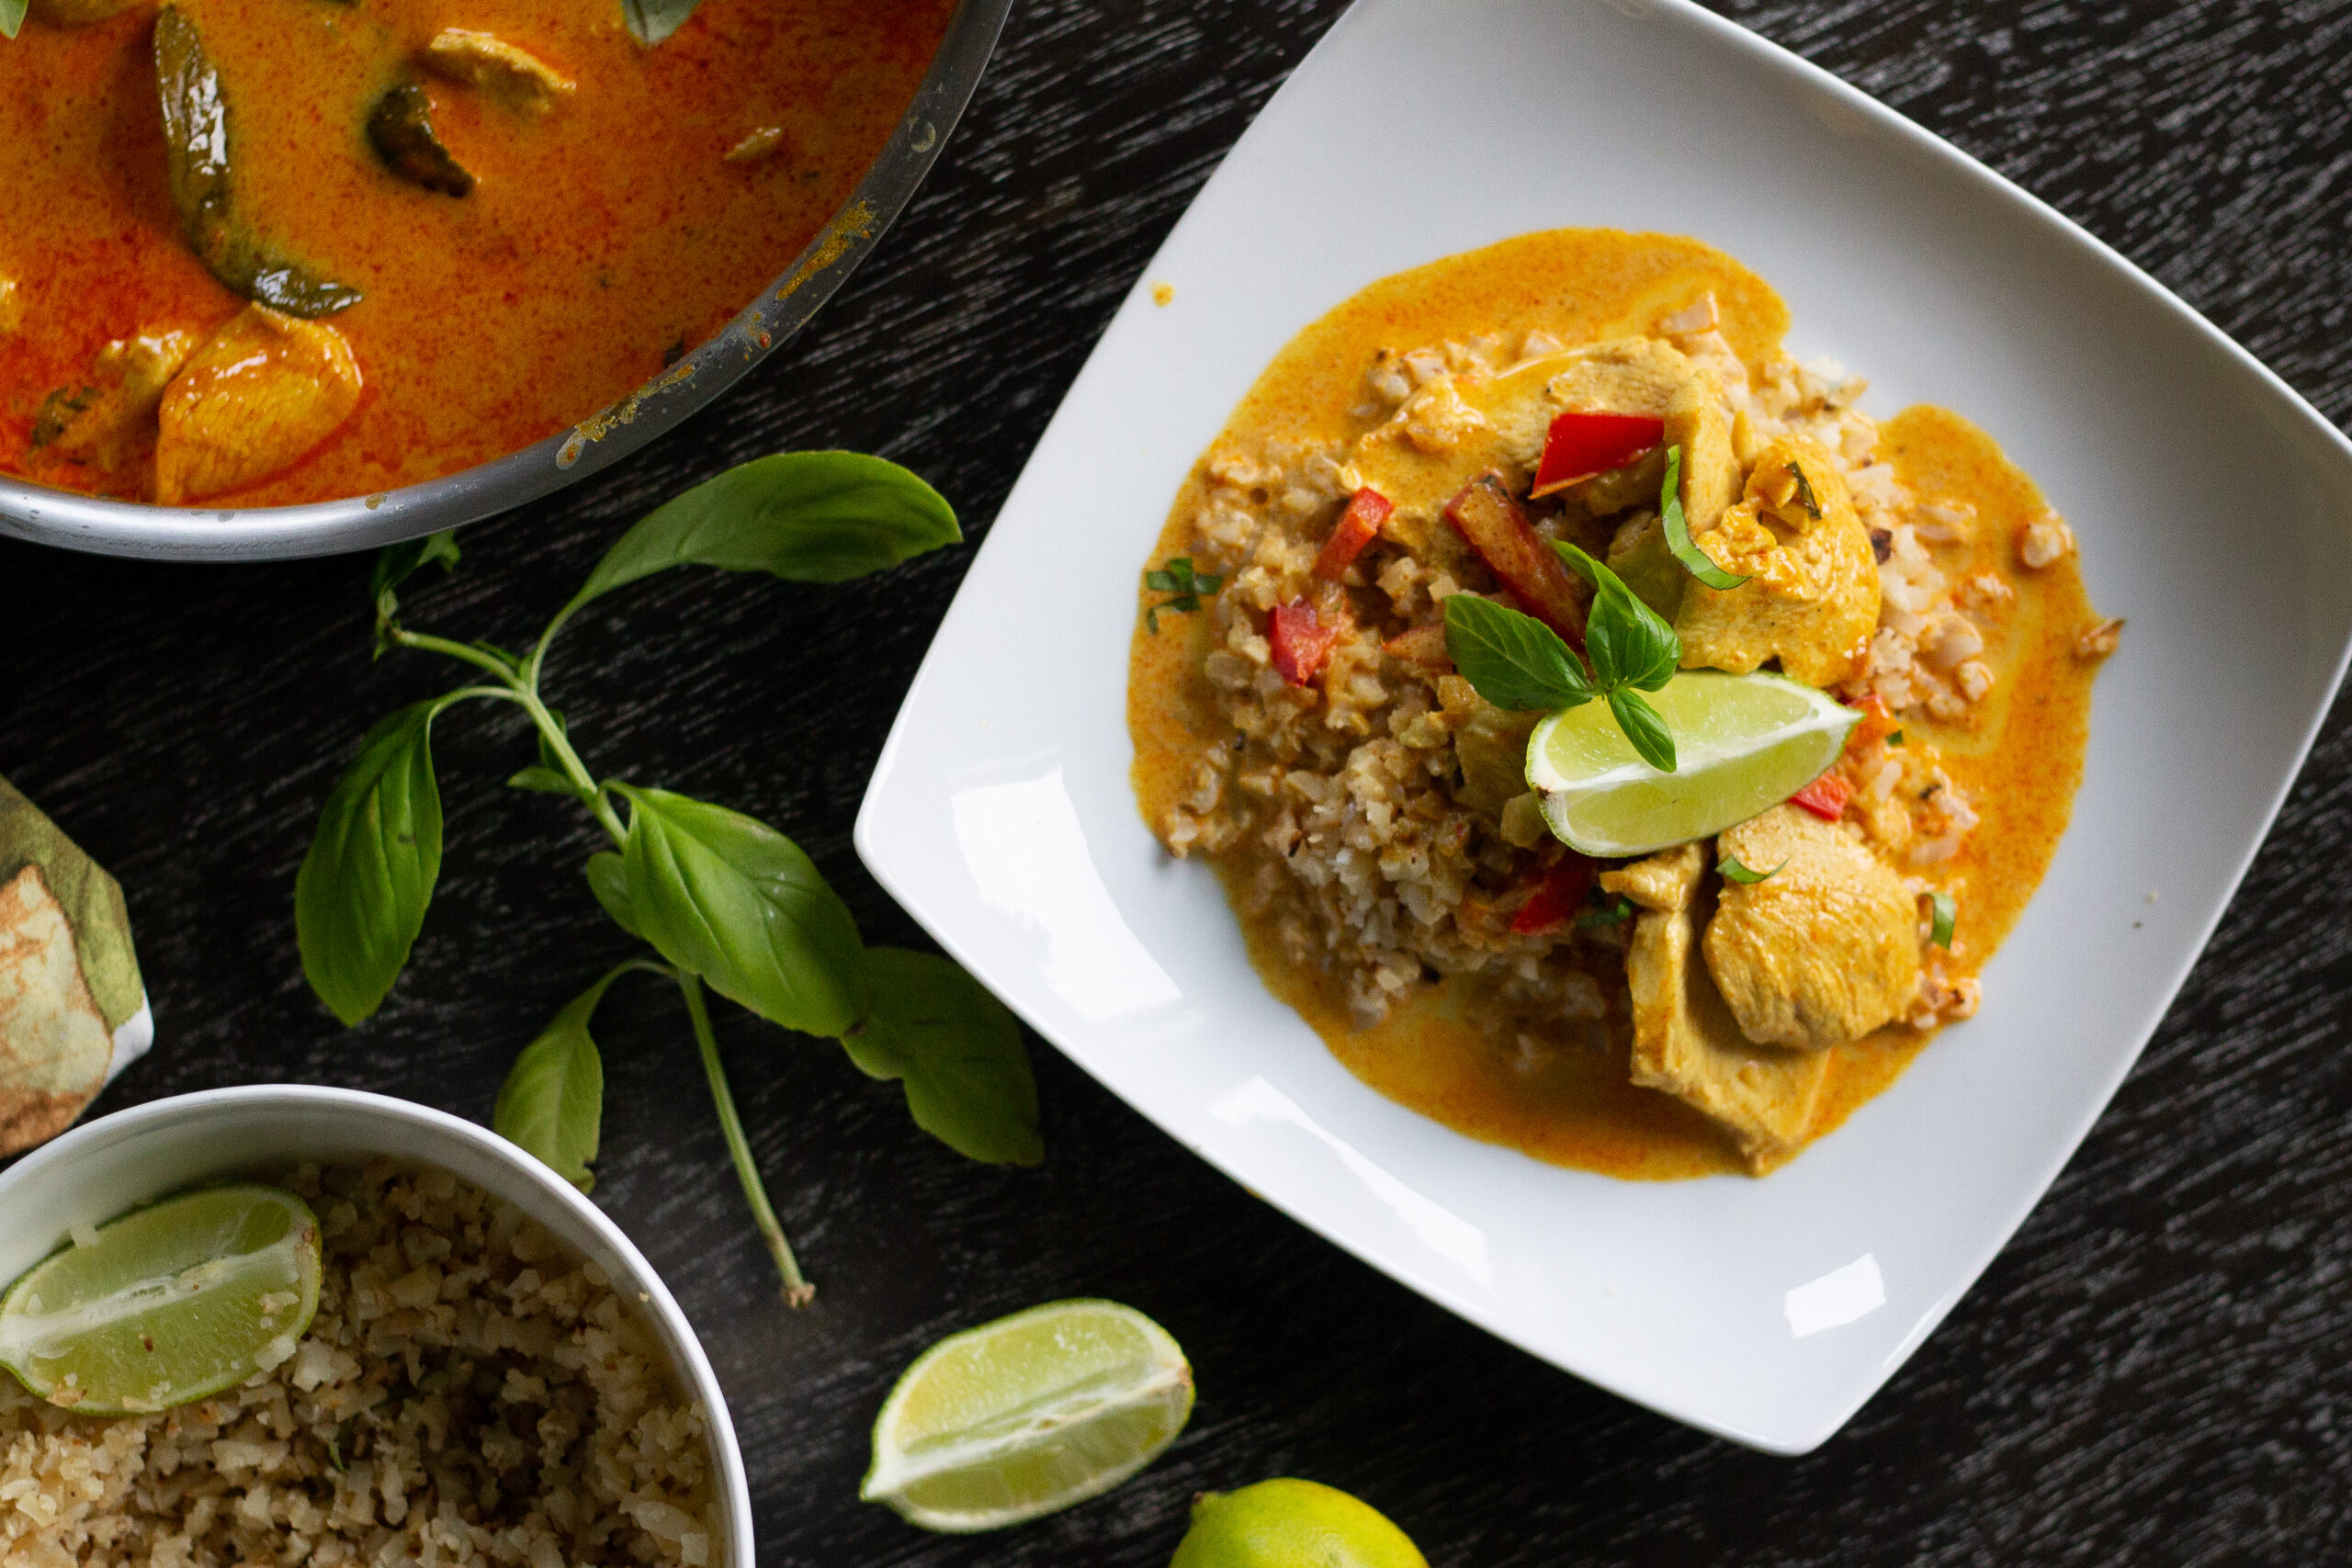 Chicken curry recipe from Edible Times